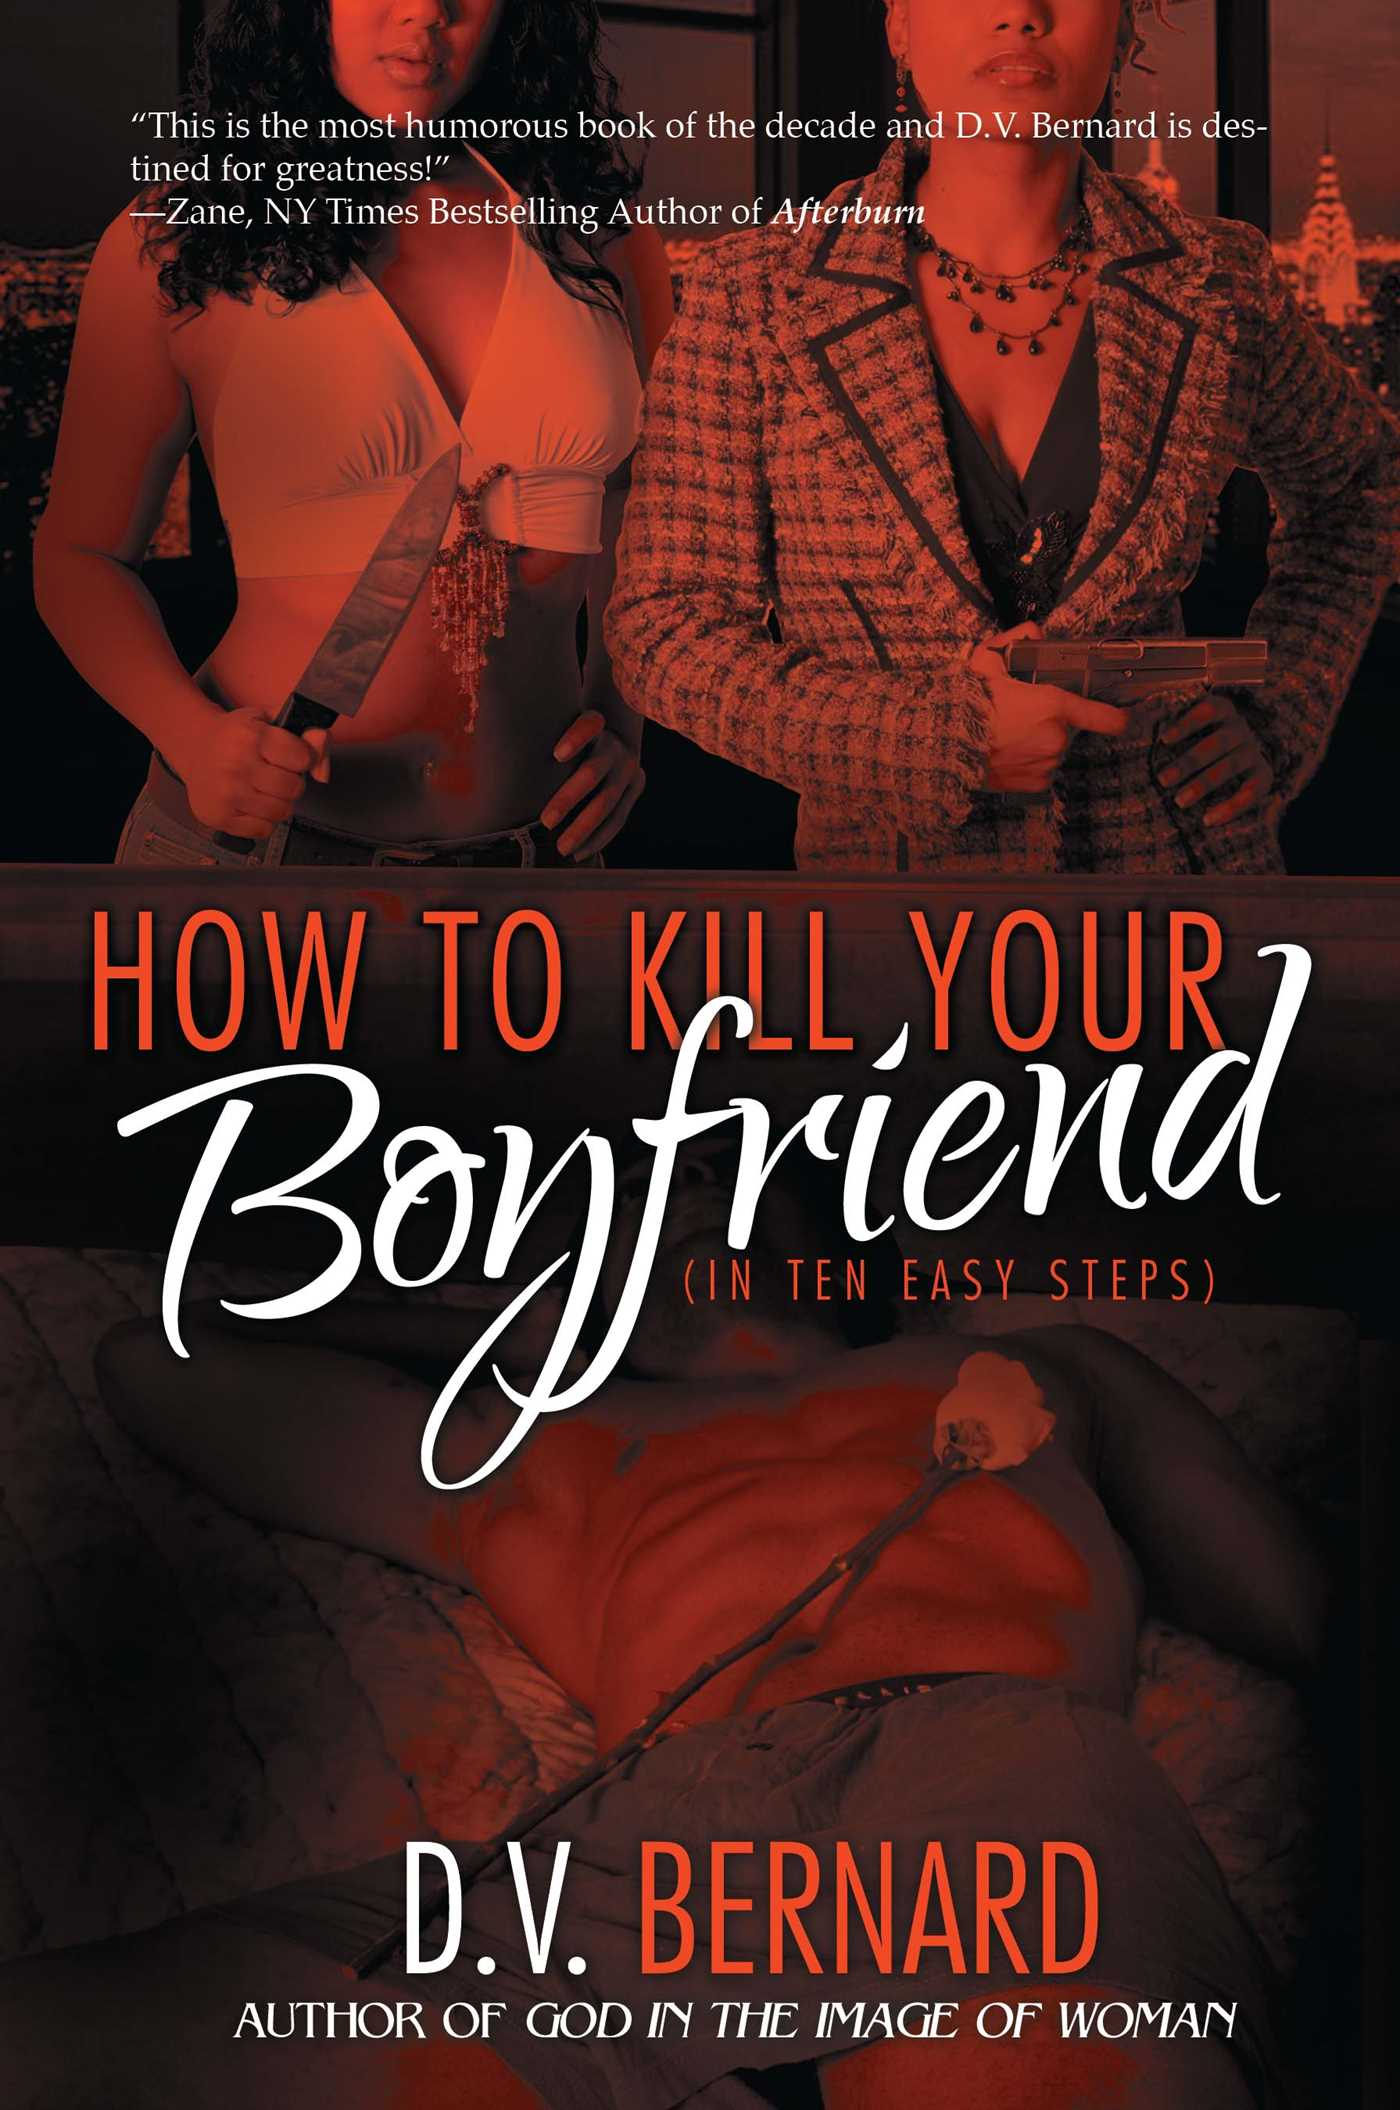 How-to-kill-your-boyfriend-in-10-easy-steps-9781451639964_hr